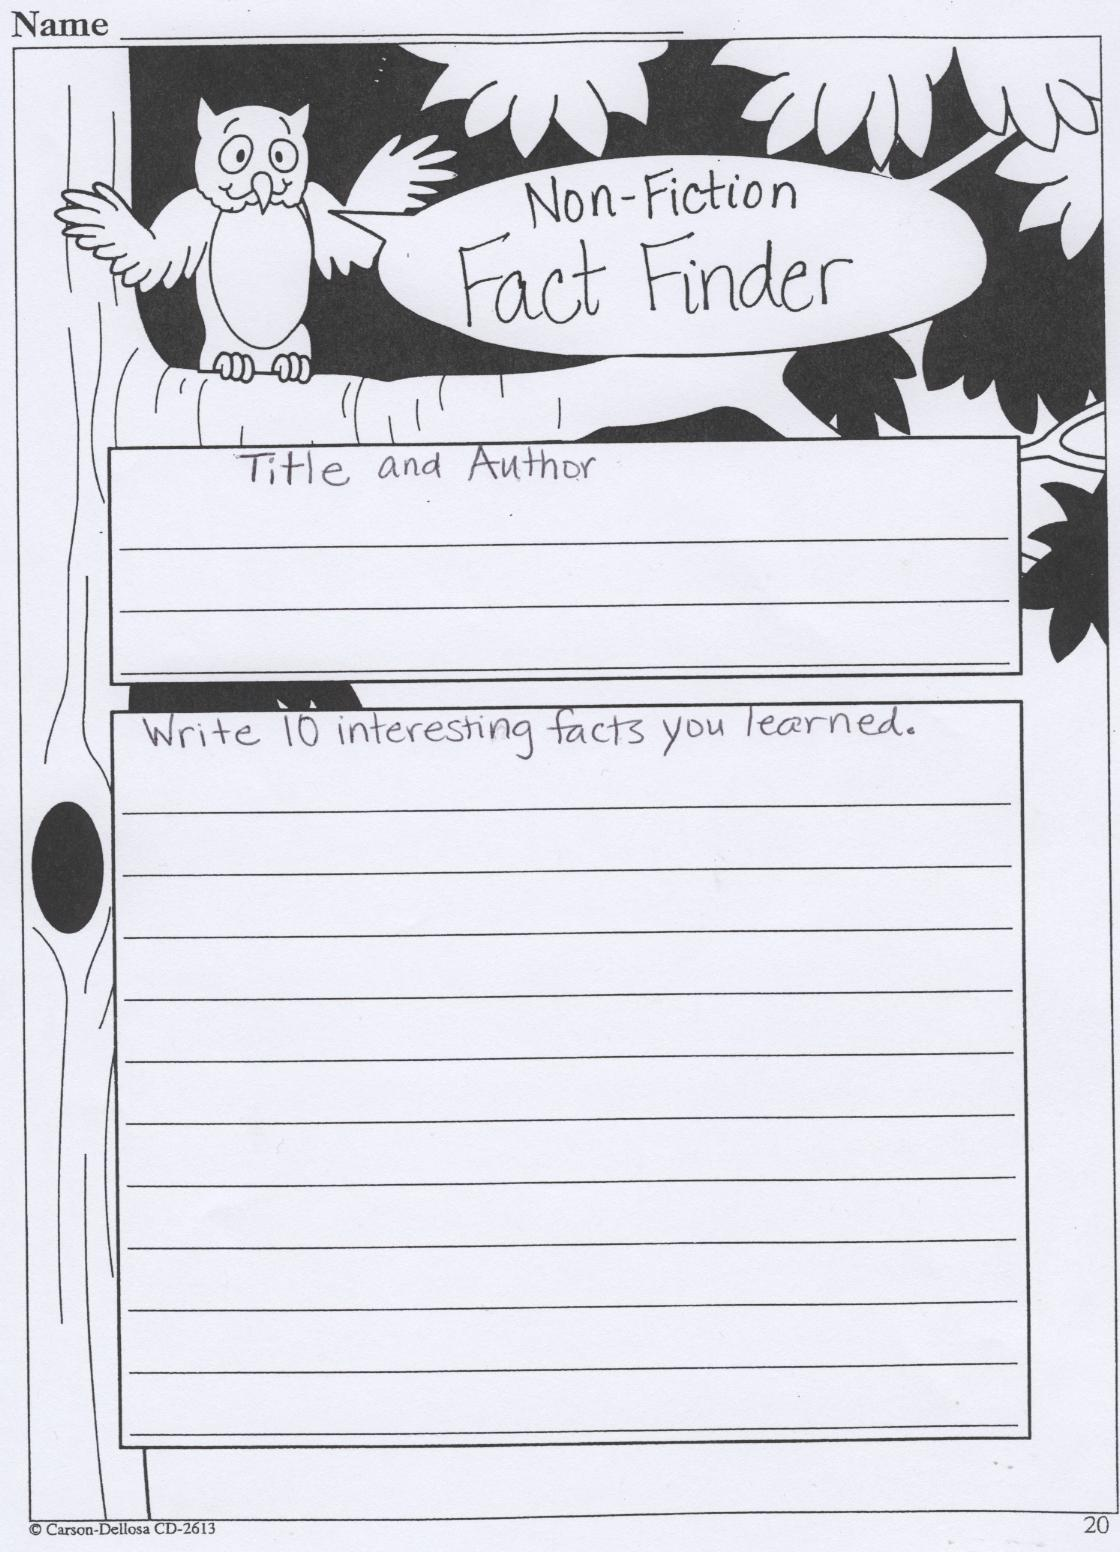 Book Report Form  Non Fiction  upper elem middle    A book report     Pinterest Book Report Template   Part I Sixth Grade Summer Fiction Book Report Form